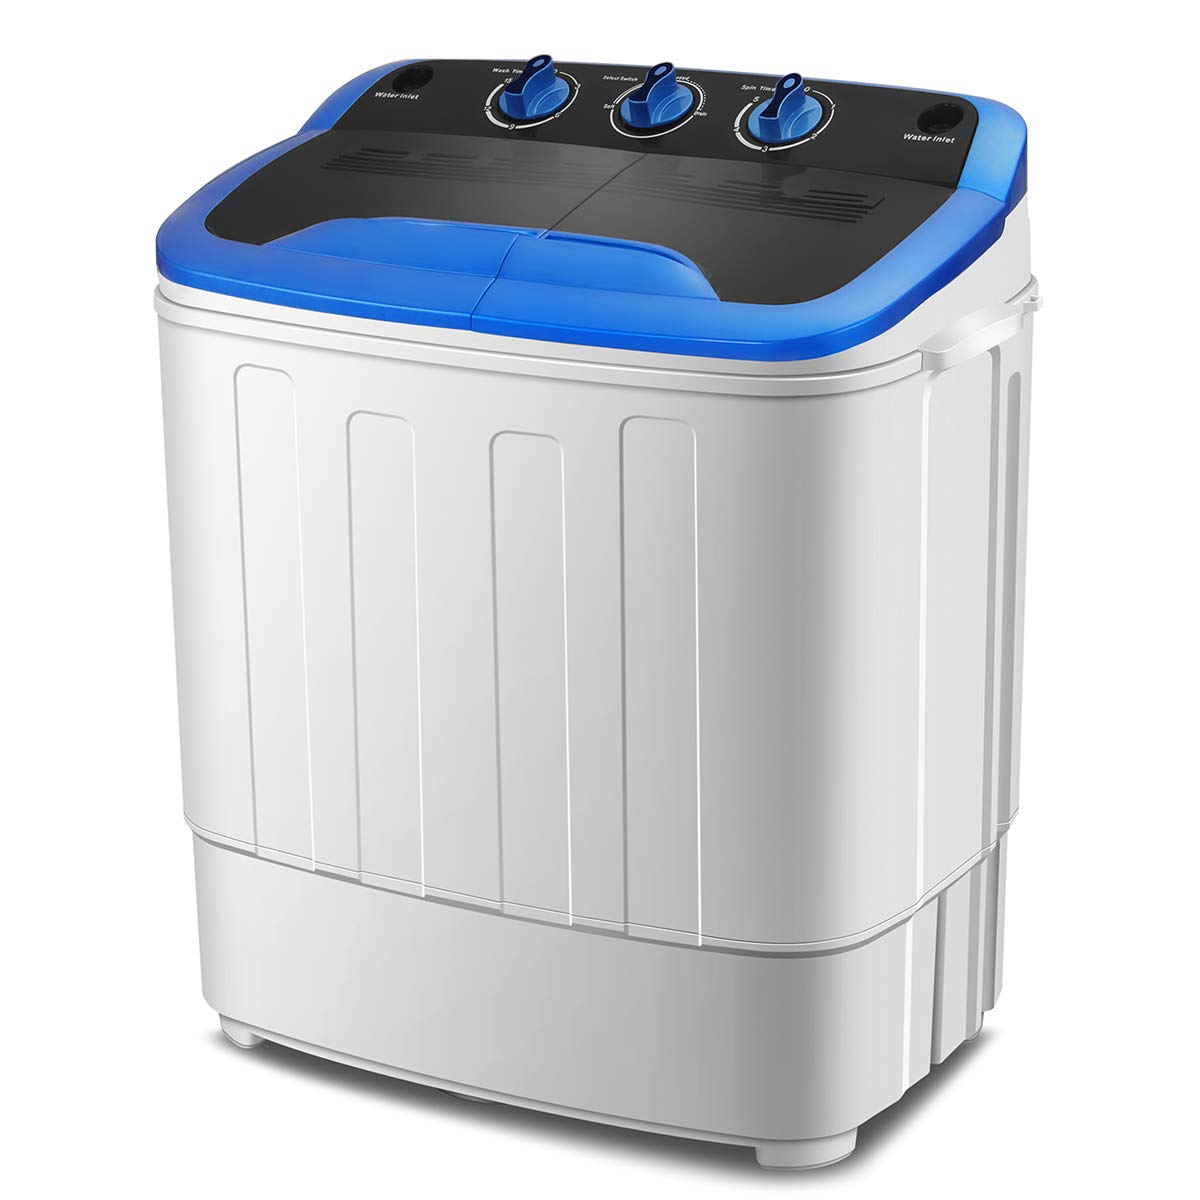 18lbs Washer White/&Blue 8lbs KUPPET Compact Twin Tub Portable Mini Washing Machine 26lbs Capacity /&Spiner //Built-in Drain Pump//Semi-Automatic